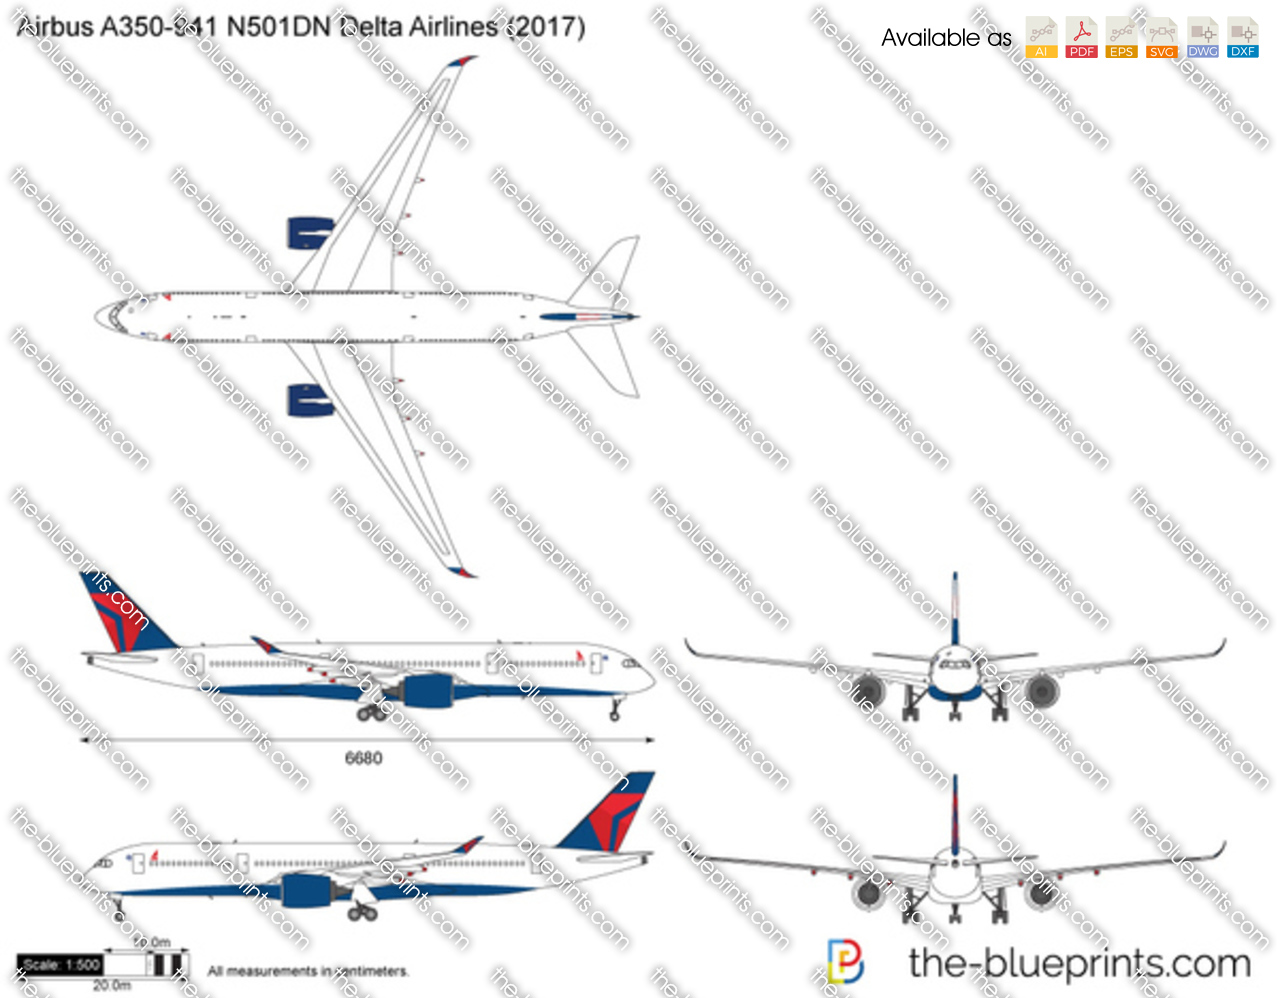 Airbus A350-941 N501DN Delta Airlines